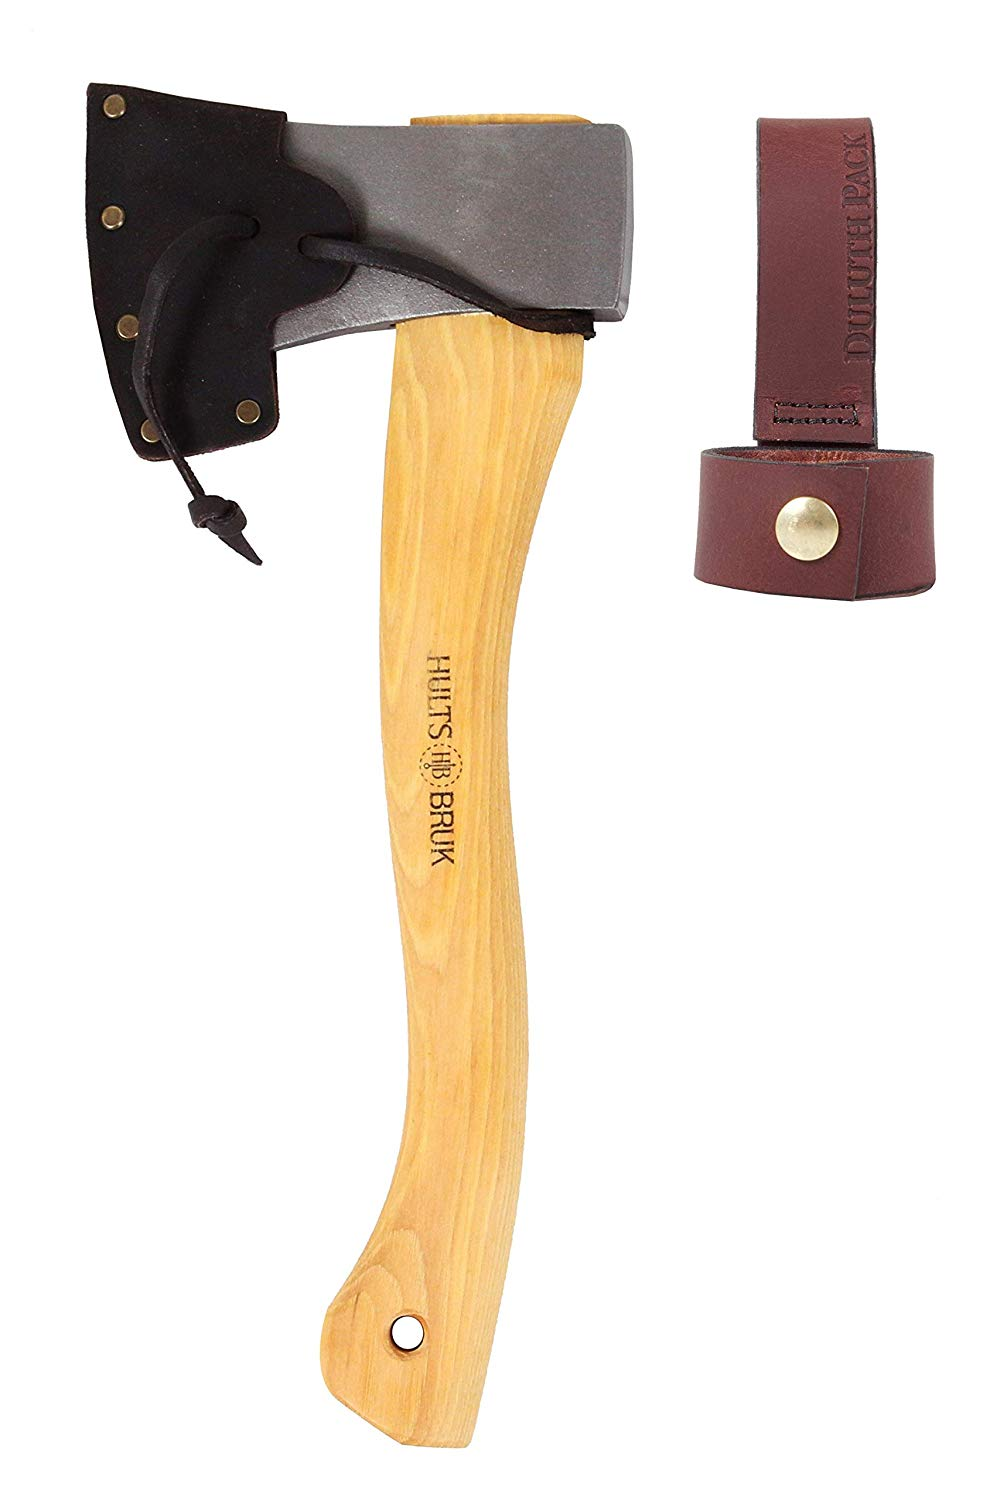 Hults Bruk Tarnaby Hatchet with Sheath and Duluth Pack Axe Holder Bundle